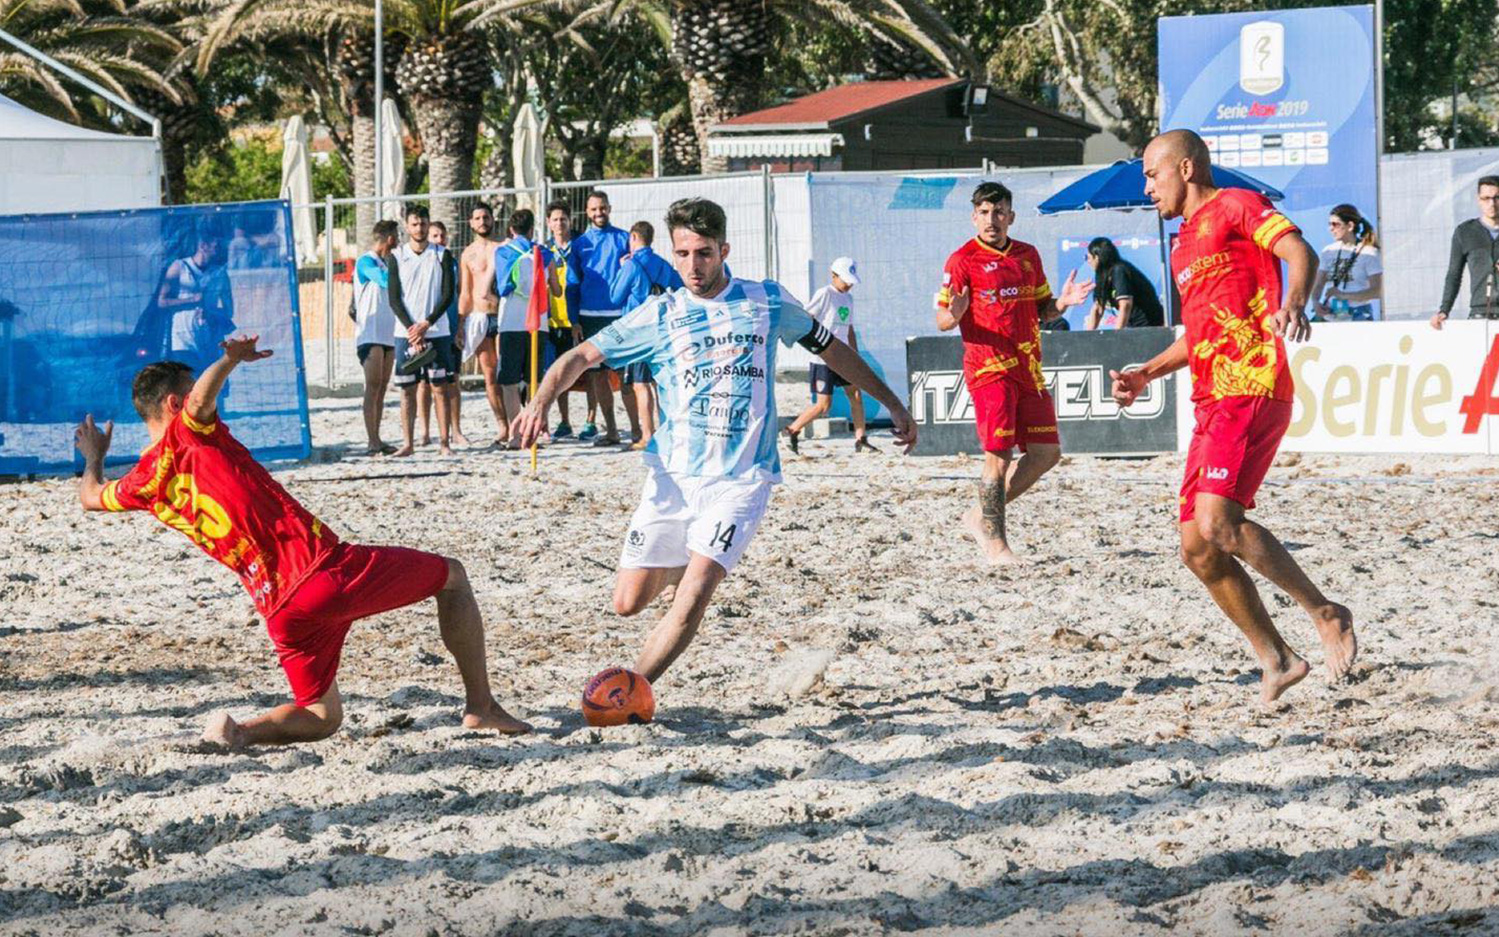 Summer Camp Beach soccer - Virtus Entella Chiavari